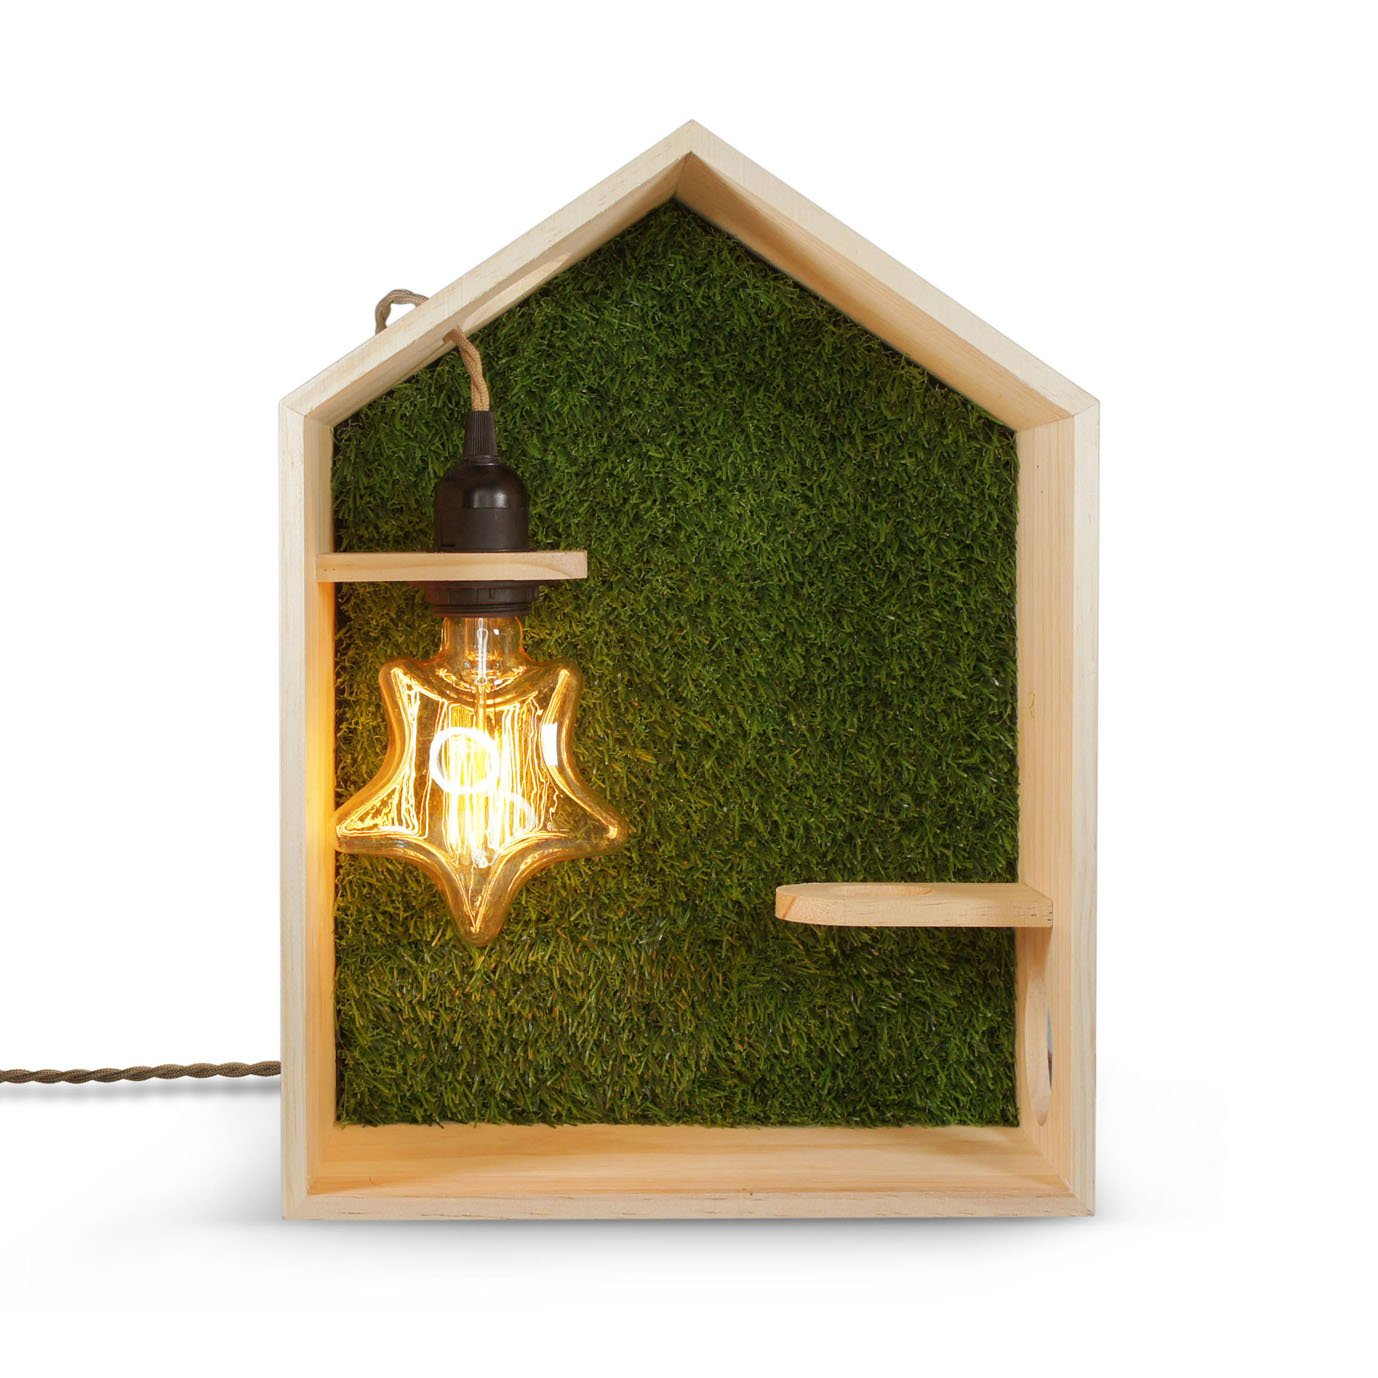 Green House - Wall Mount or Free Standing House Shape Wooden Storage Lamp and Shelf | Handmade Natural Pine Wood (FSC) with The Grass Wall, Include The Star Light Bulb | 1-Year Warranty